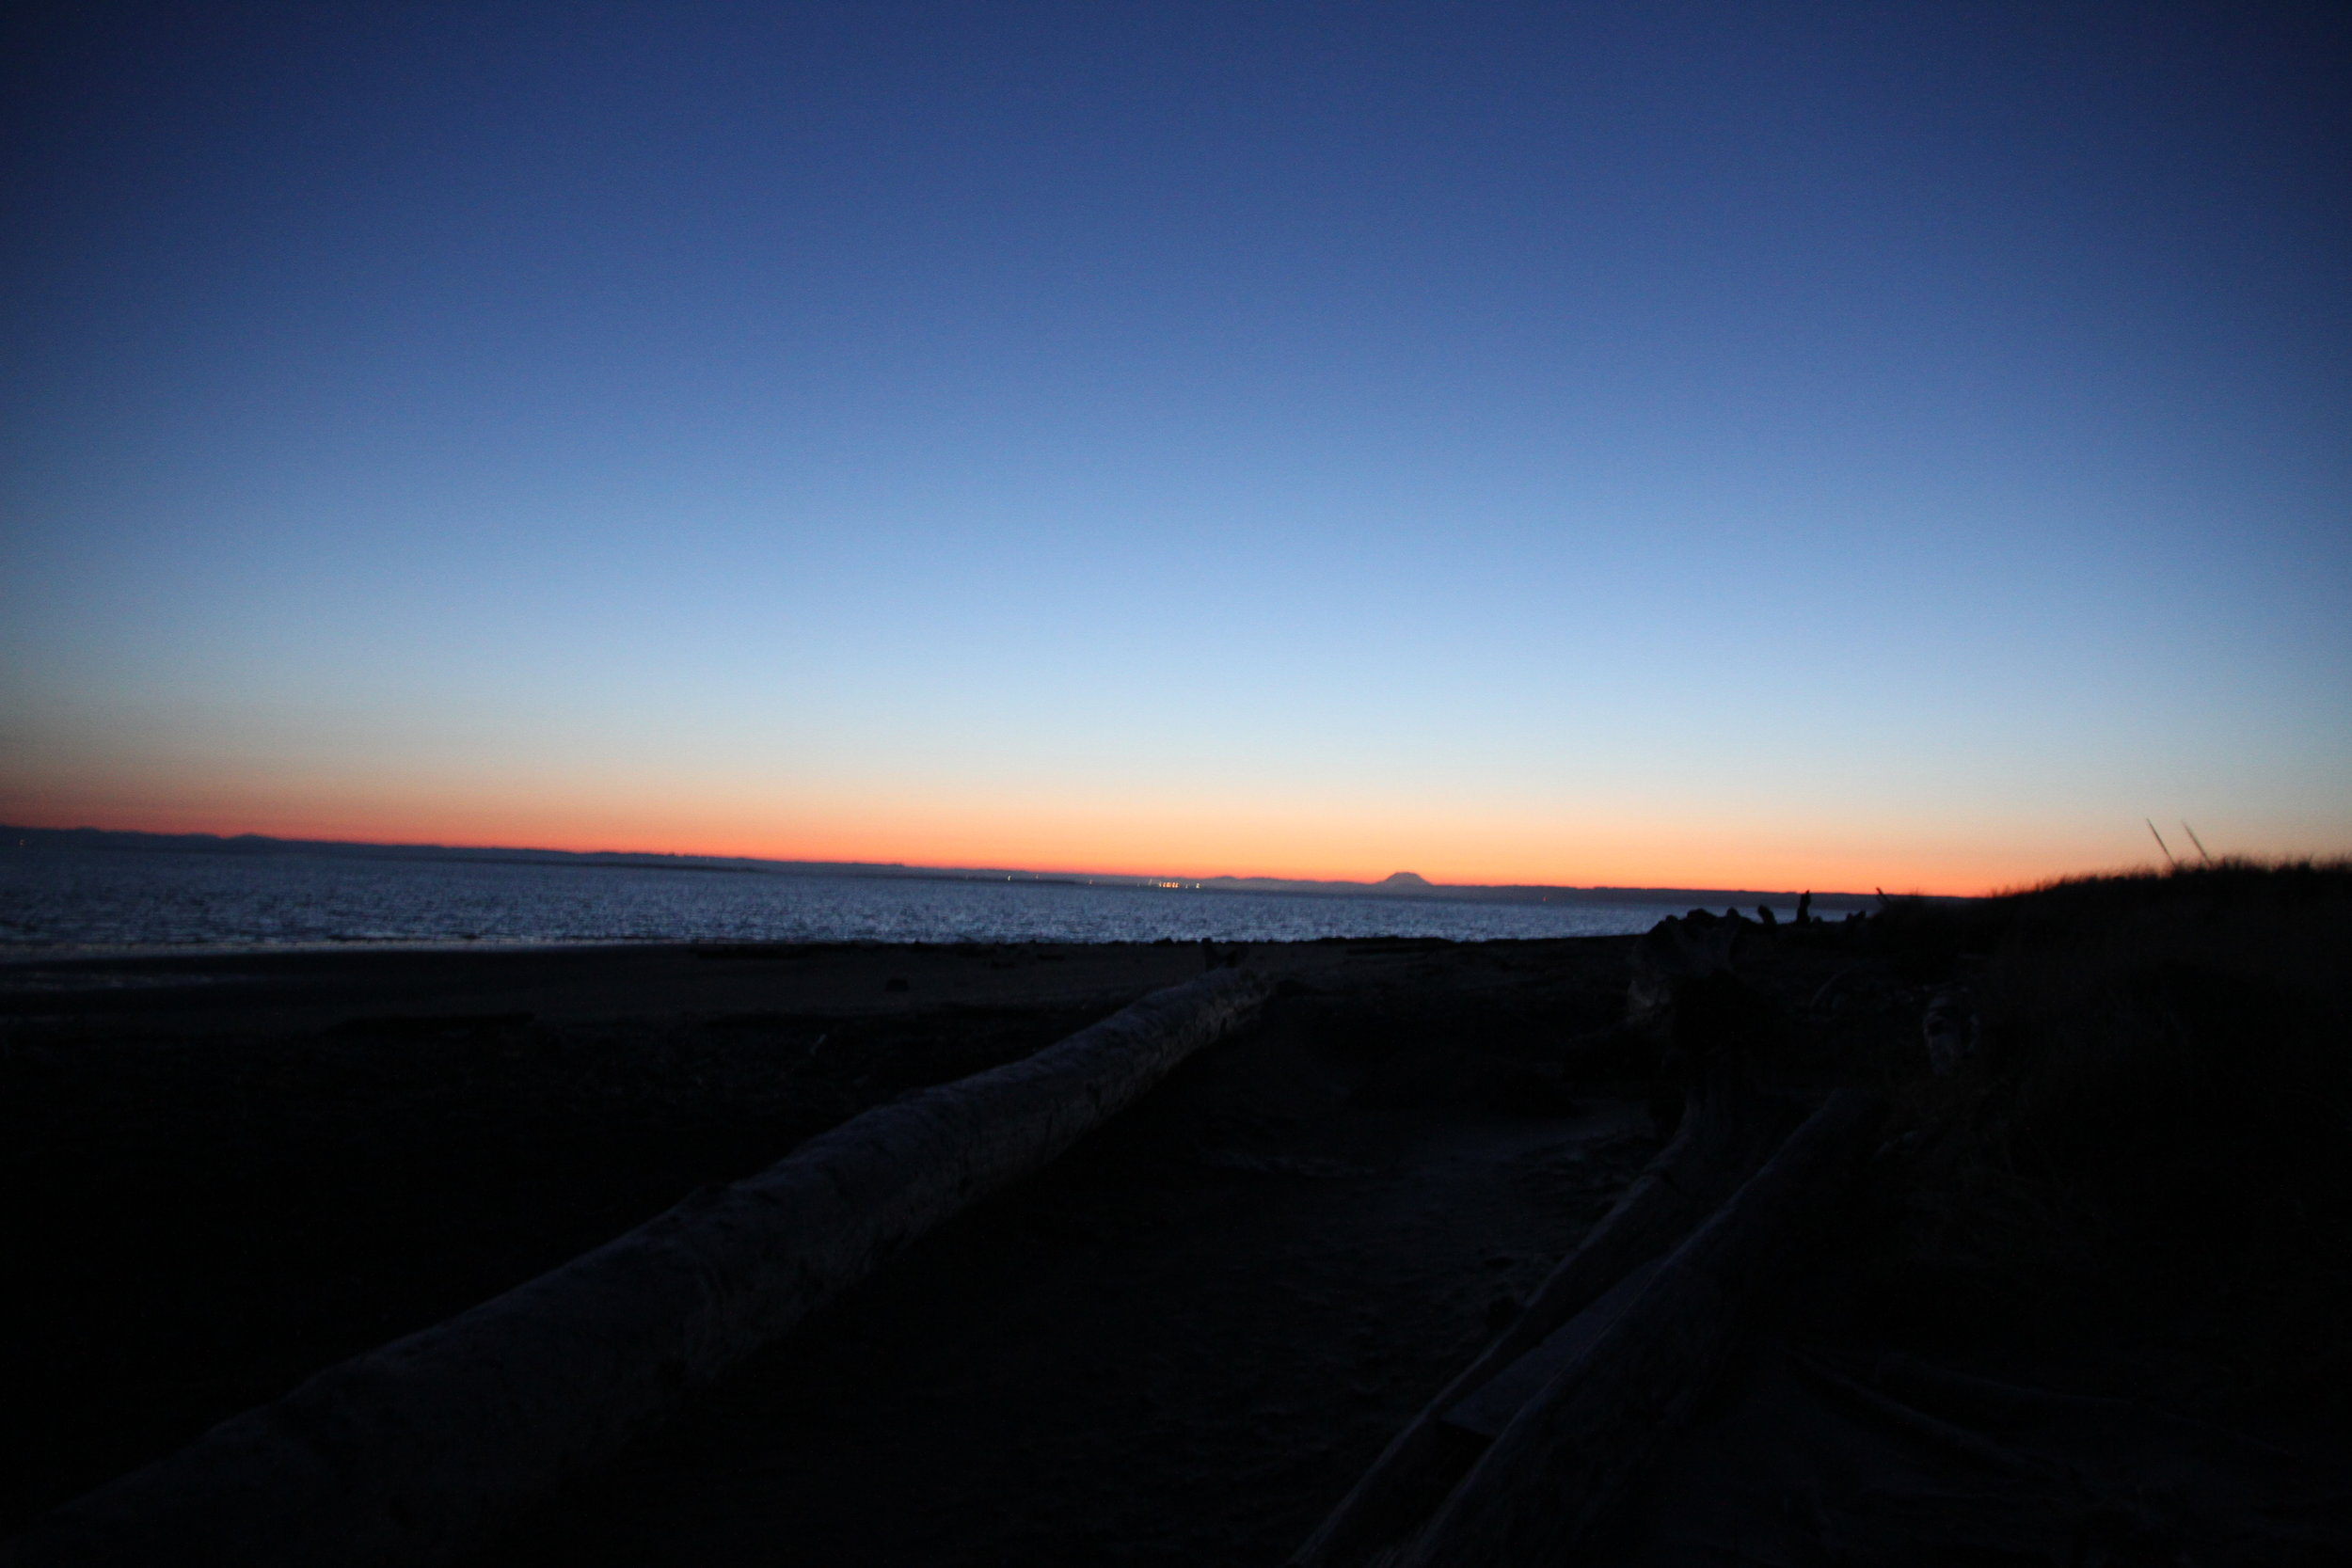 First light on Gray's harbor, looking east. Tanya Pluth photo.